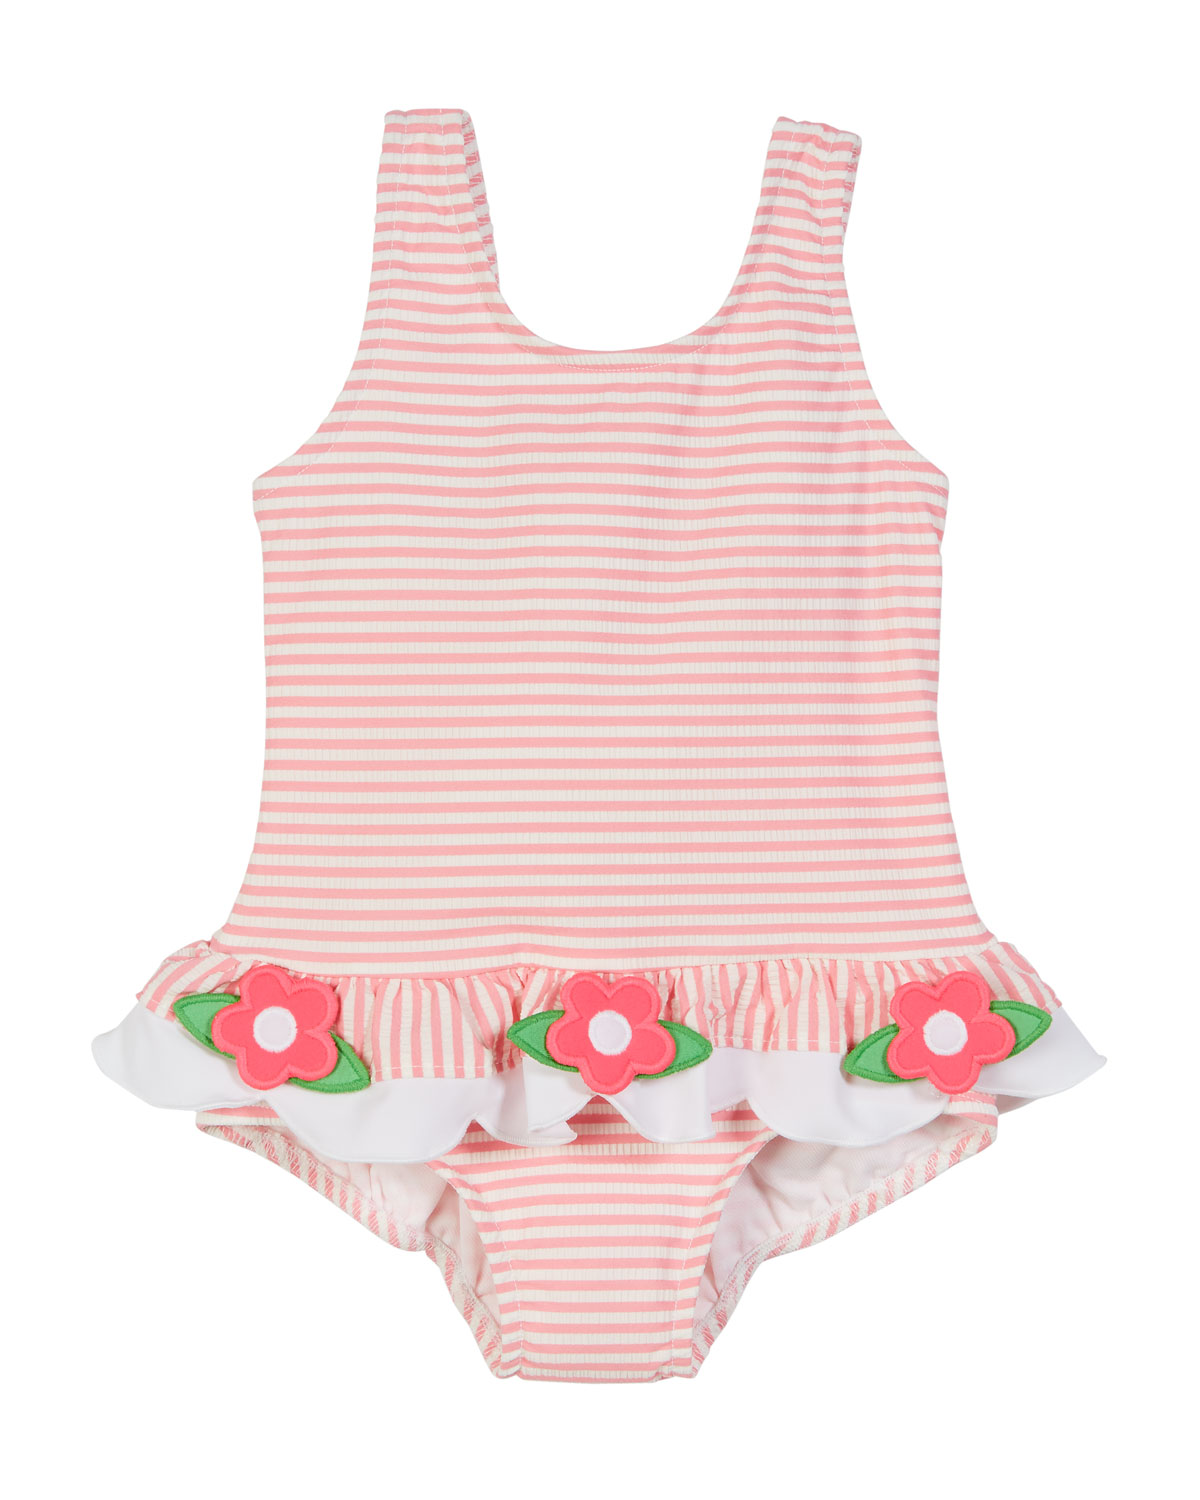 2045a20753 Florence Eiseman Striped Seersucker Ruffle-Skirt One-Piece Swimsuit, Size 2- 6X